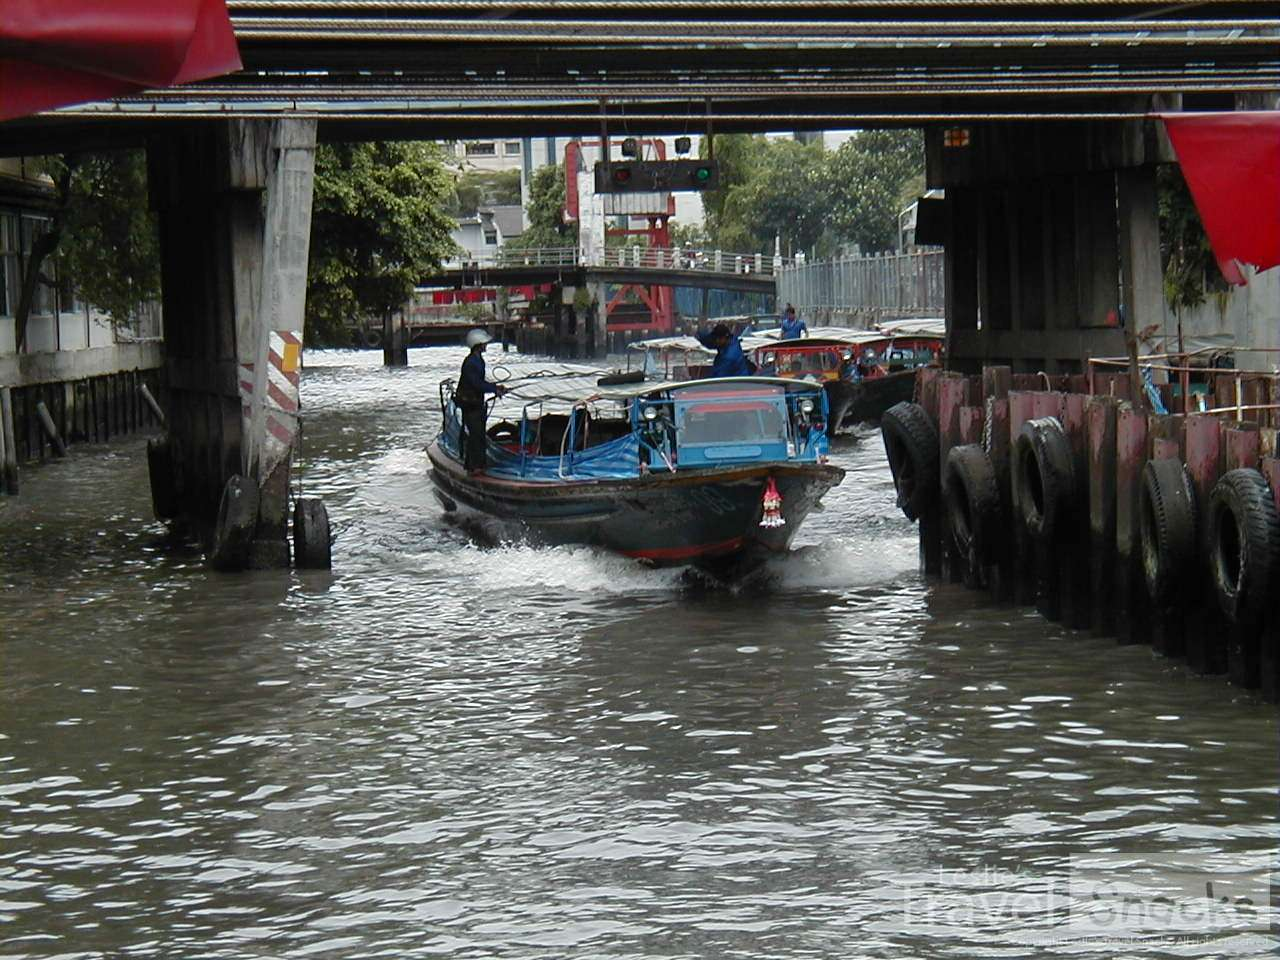 Love the klong taxis in Bangkok. Only about 10 cents to ride!